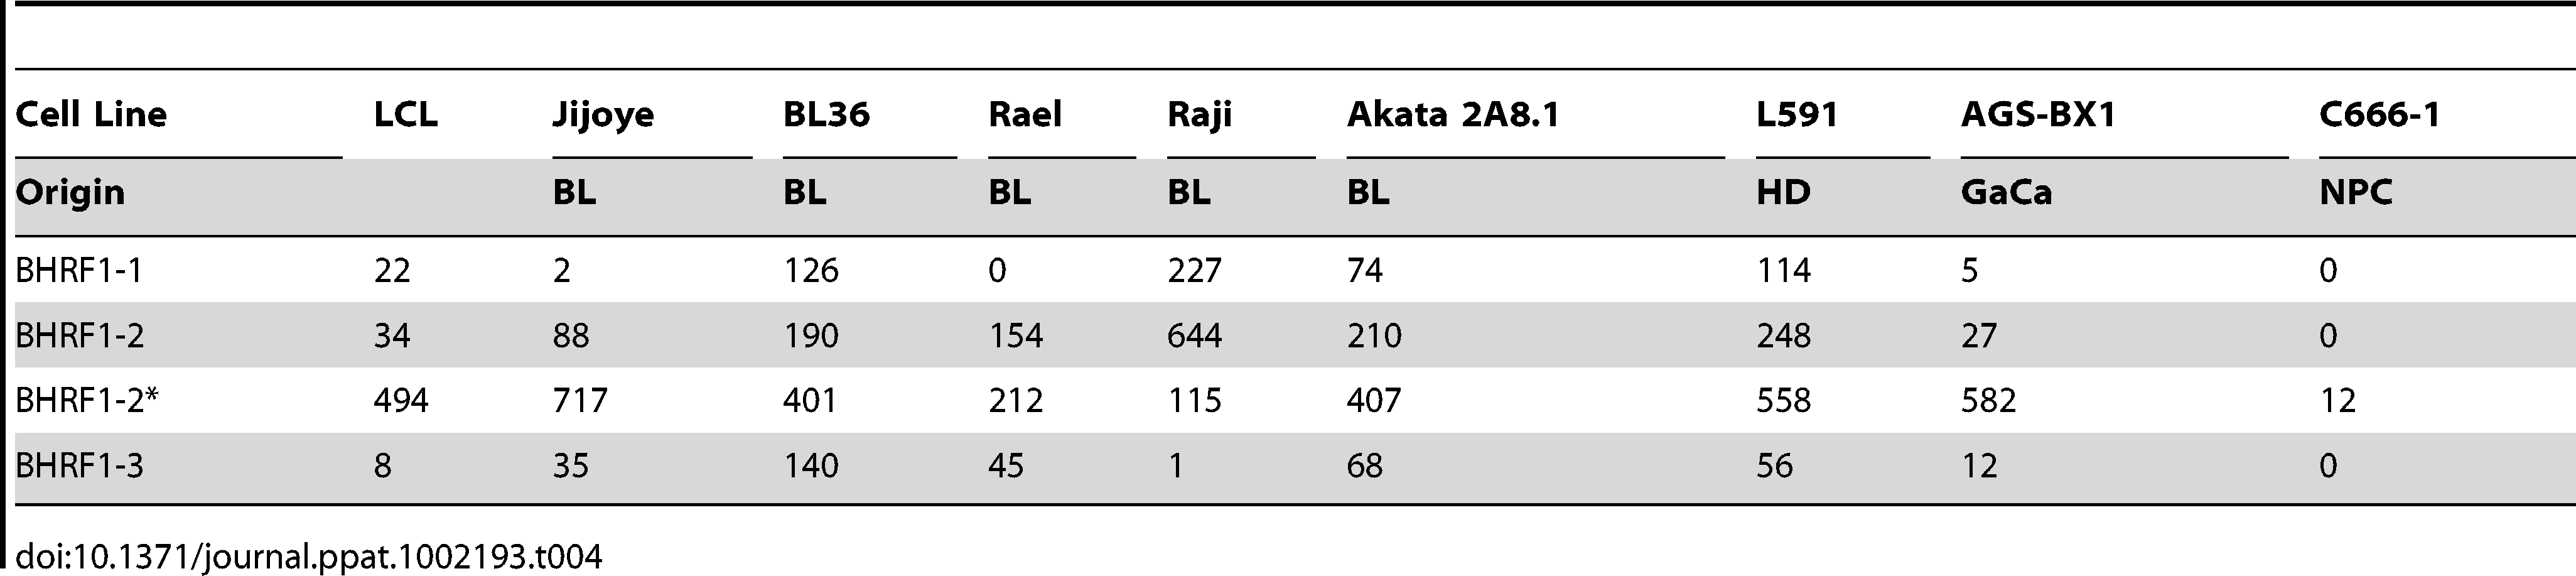 Copy number per cell of EBV BHRF1 miRNAs in cell lines.